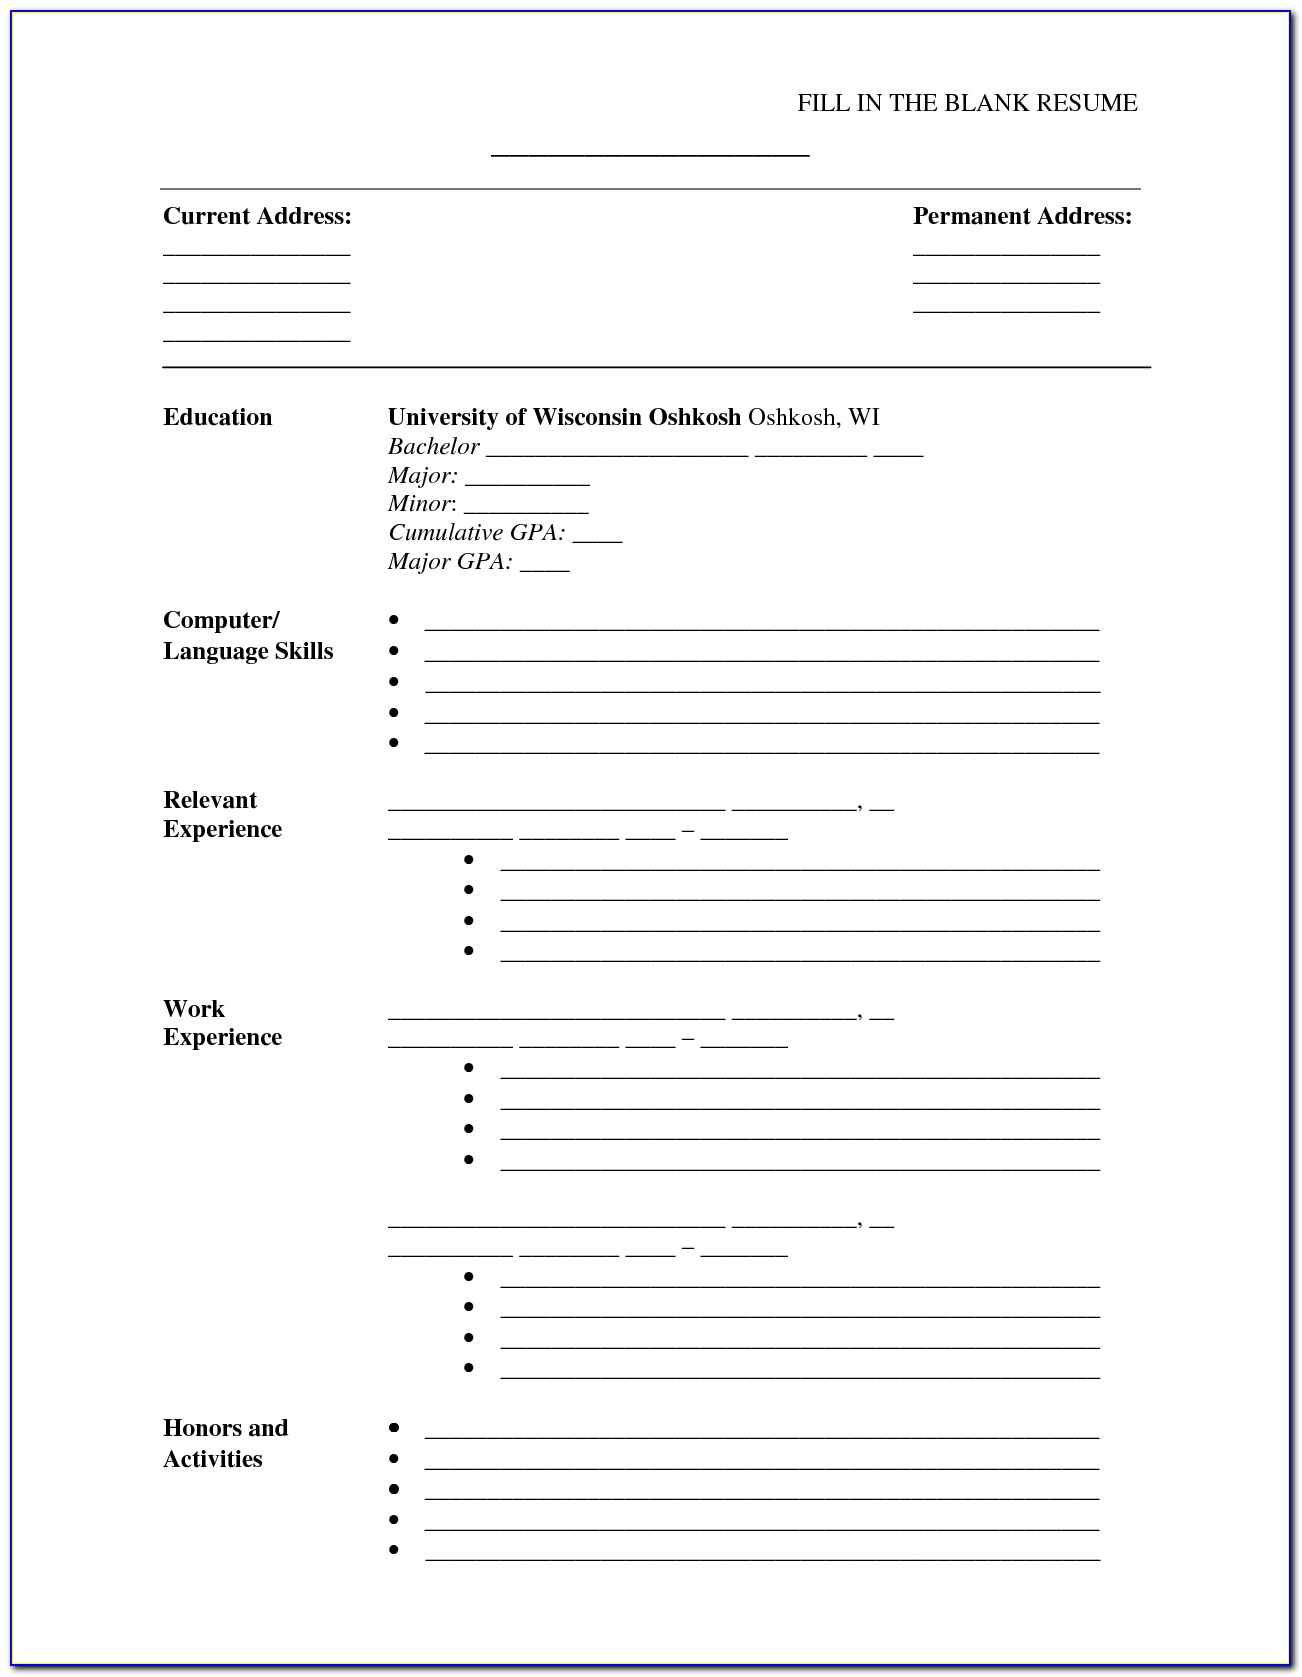 Fill In The Blank Resume Printable